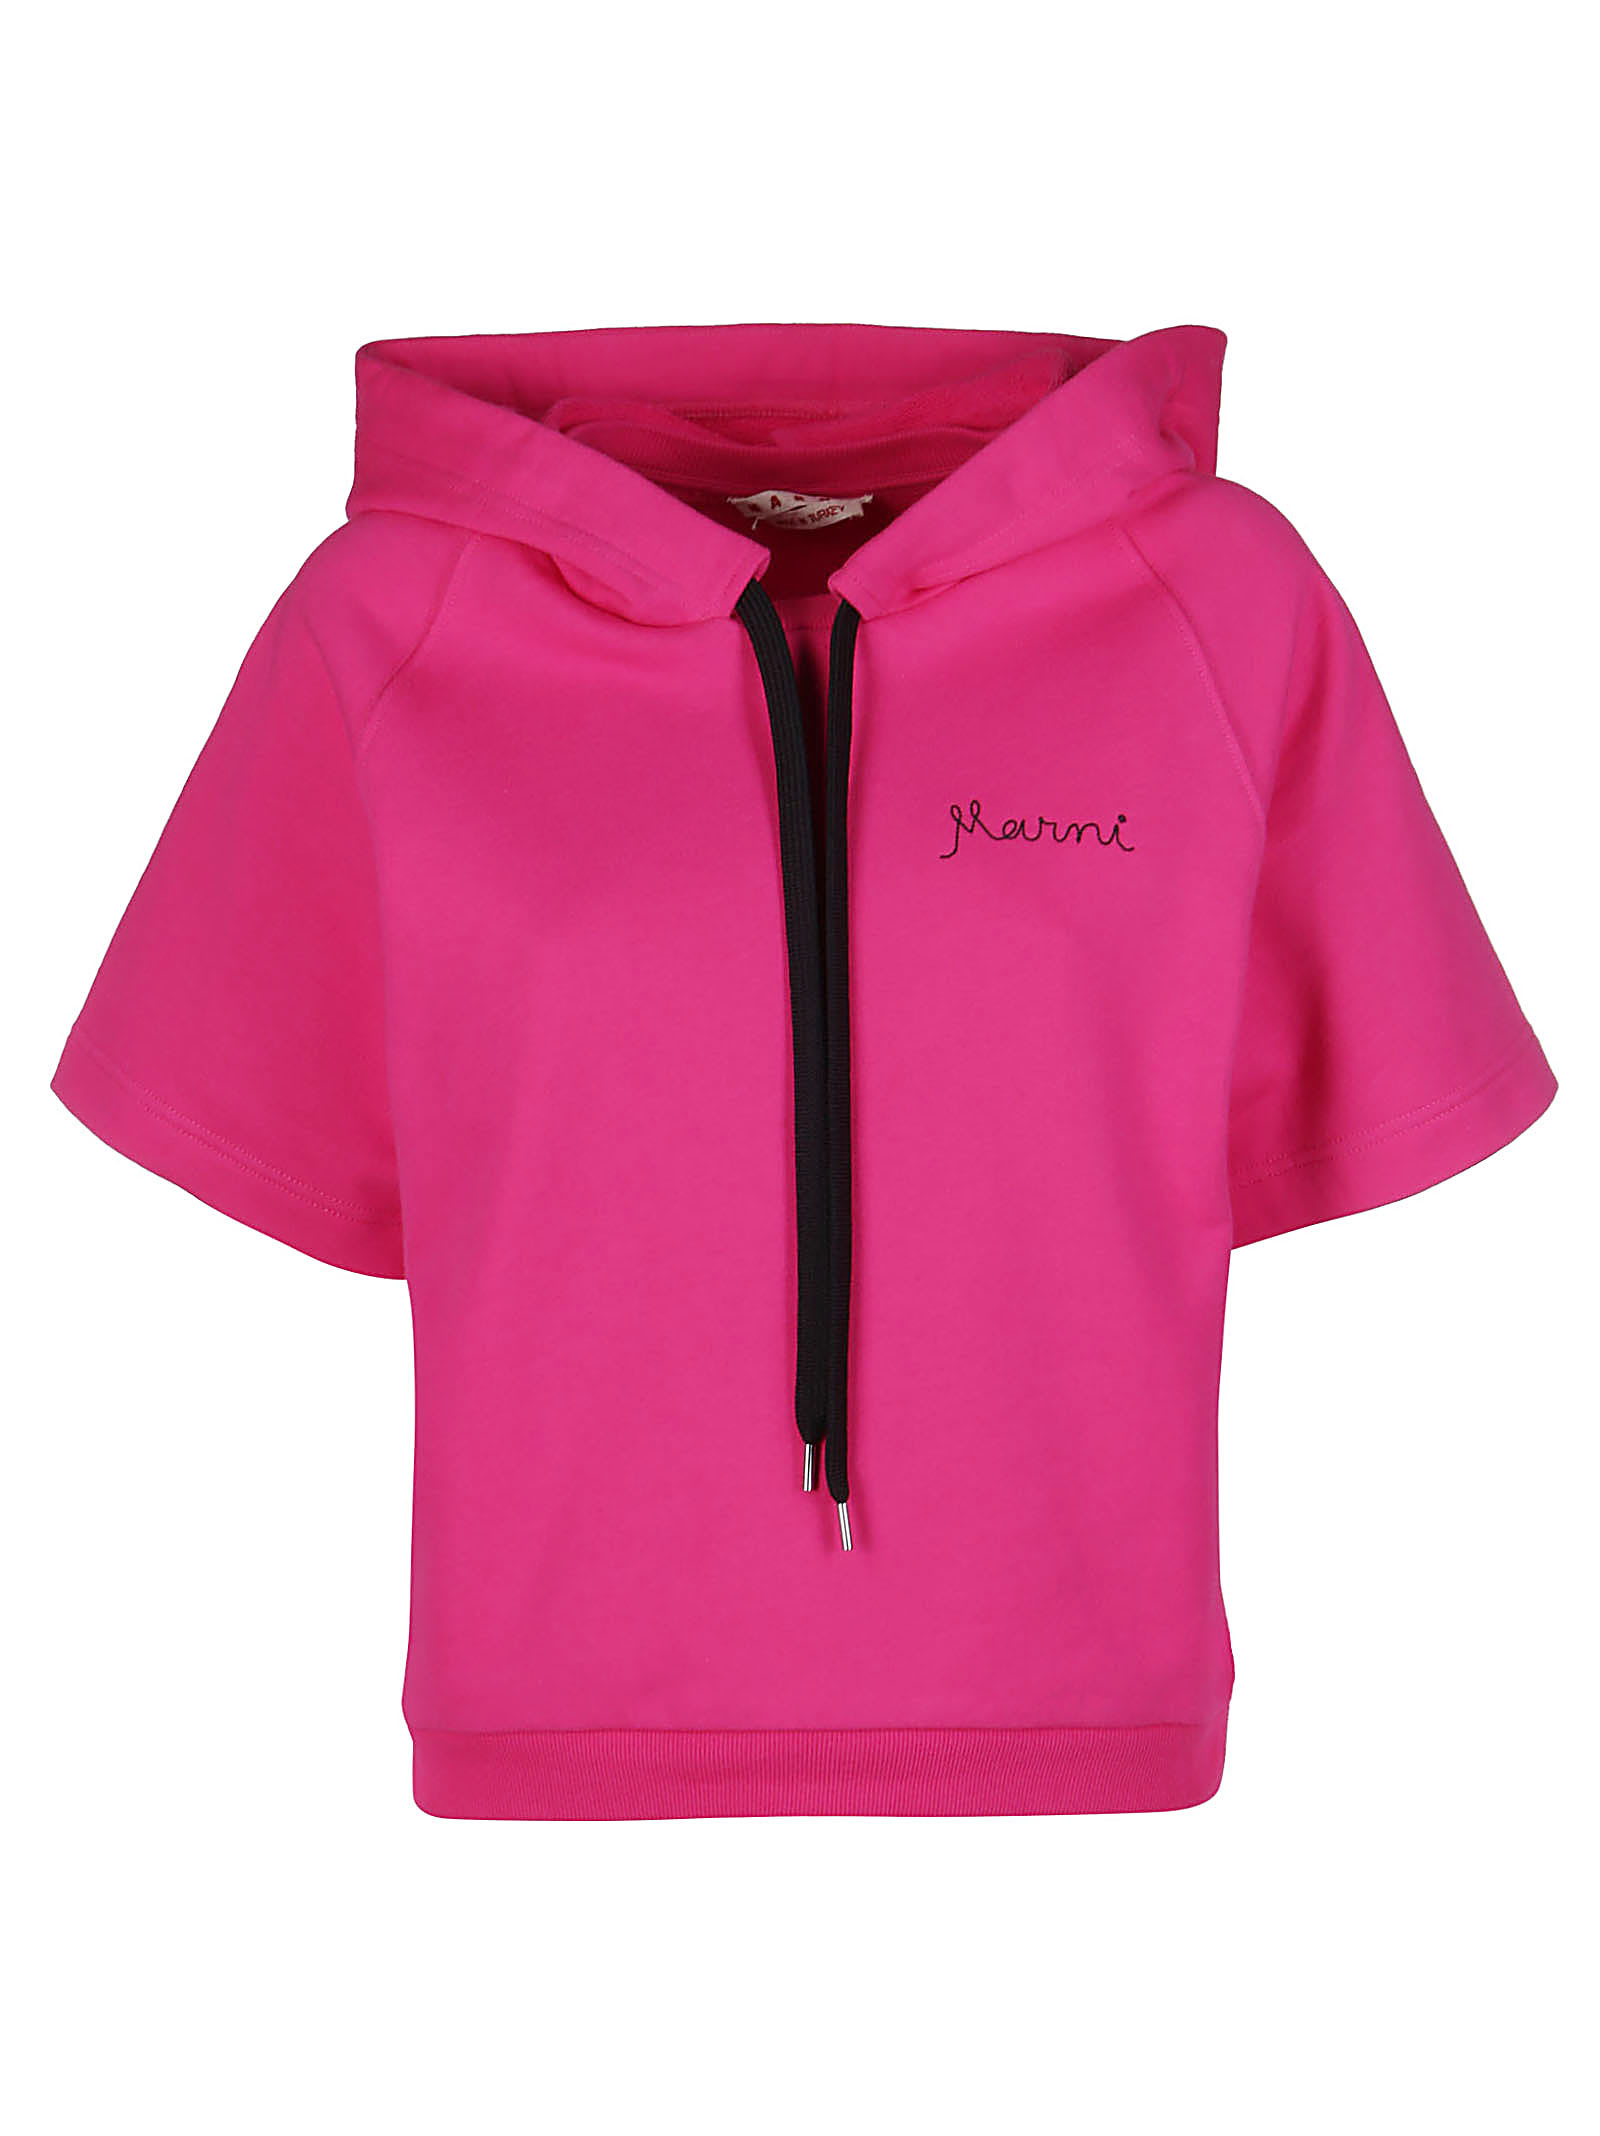 Marni FUCHSIA COTTON SWEATSHIRT